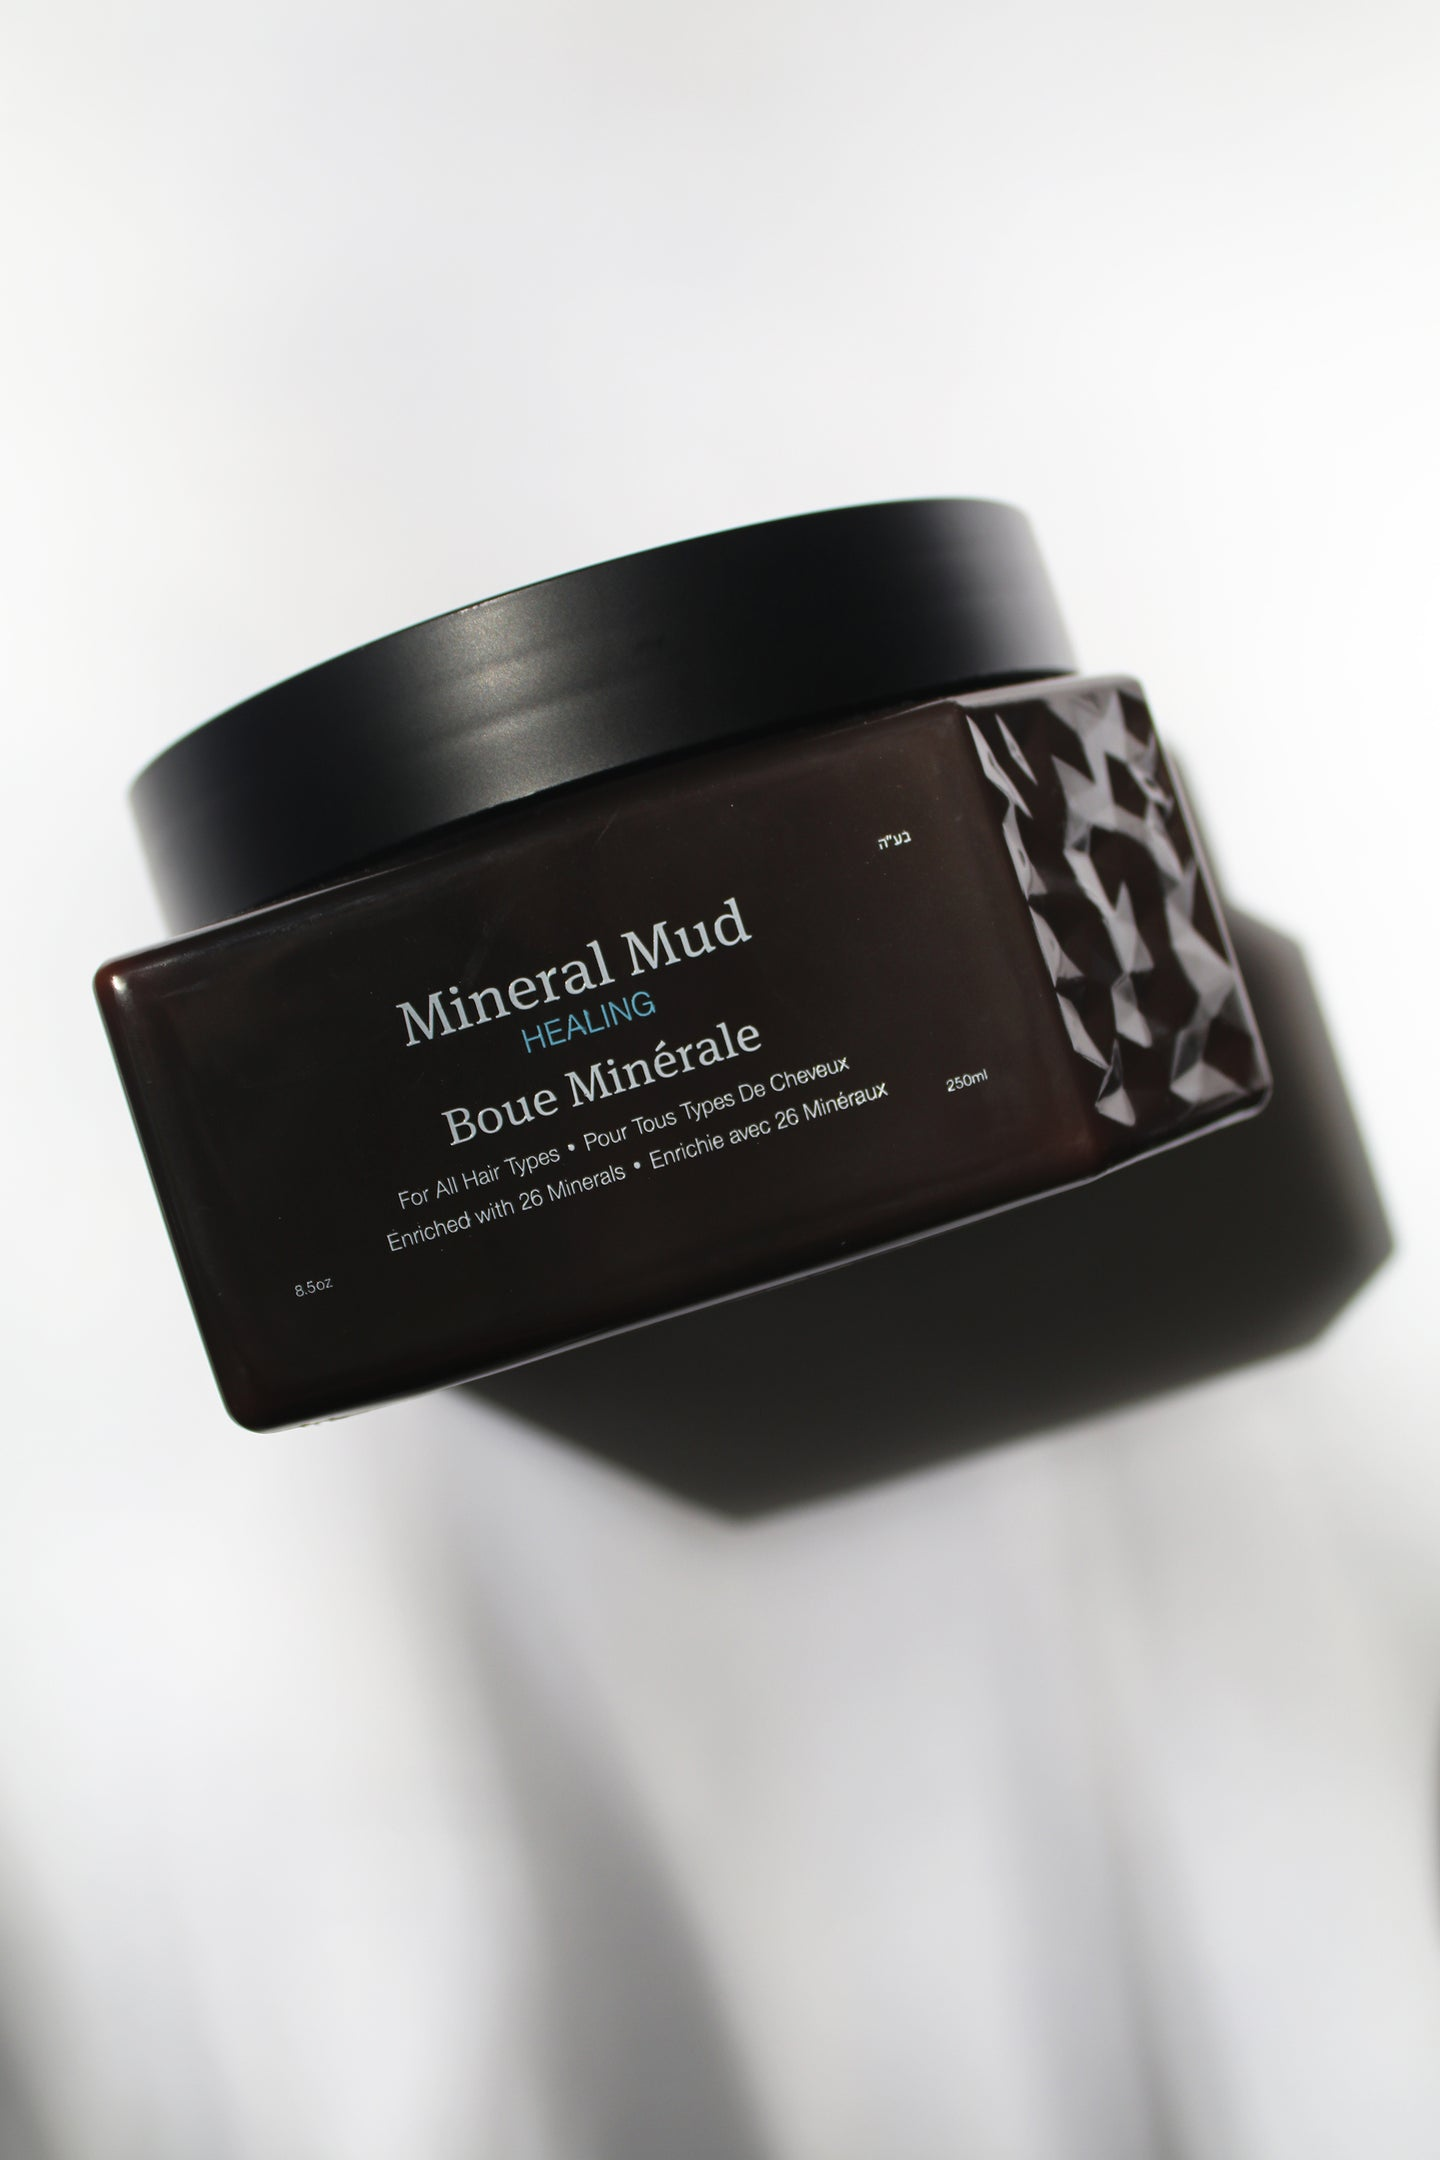 Mineral Mud - Full Size